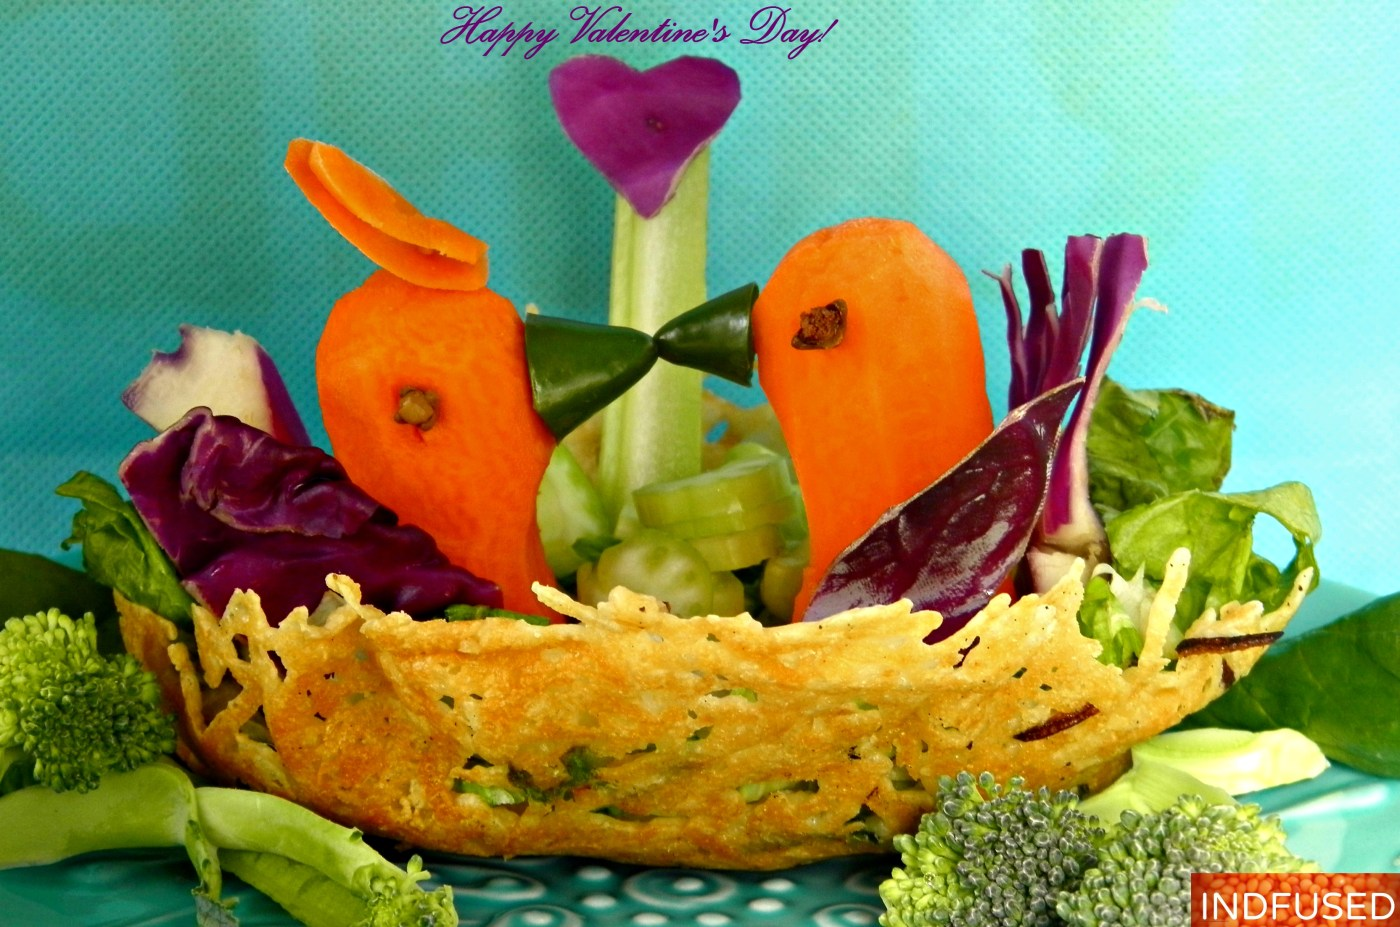 #easy #healthy #recipe for #Valentine's Day#Kraft Parmesan nest bowl with jalapenos ,#salad with#coconut curry dressing